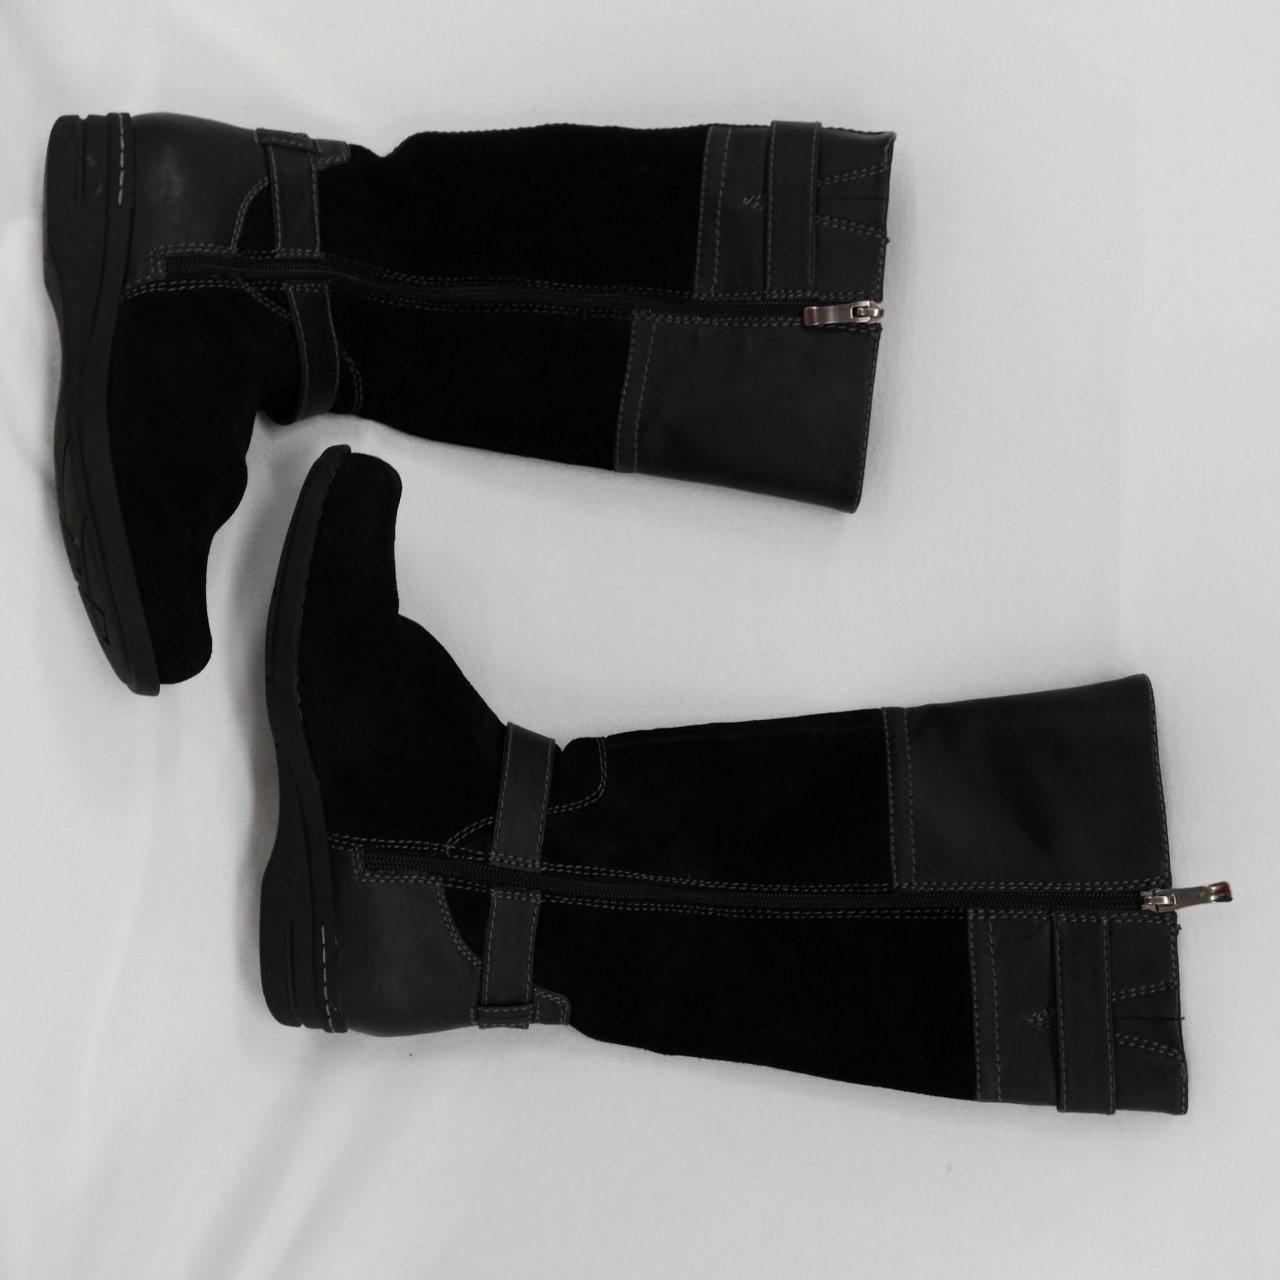 Black BJORNDAL Women's Boots Long Zip Up Sides Leather Upper Size 7